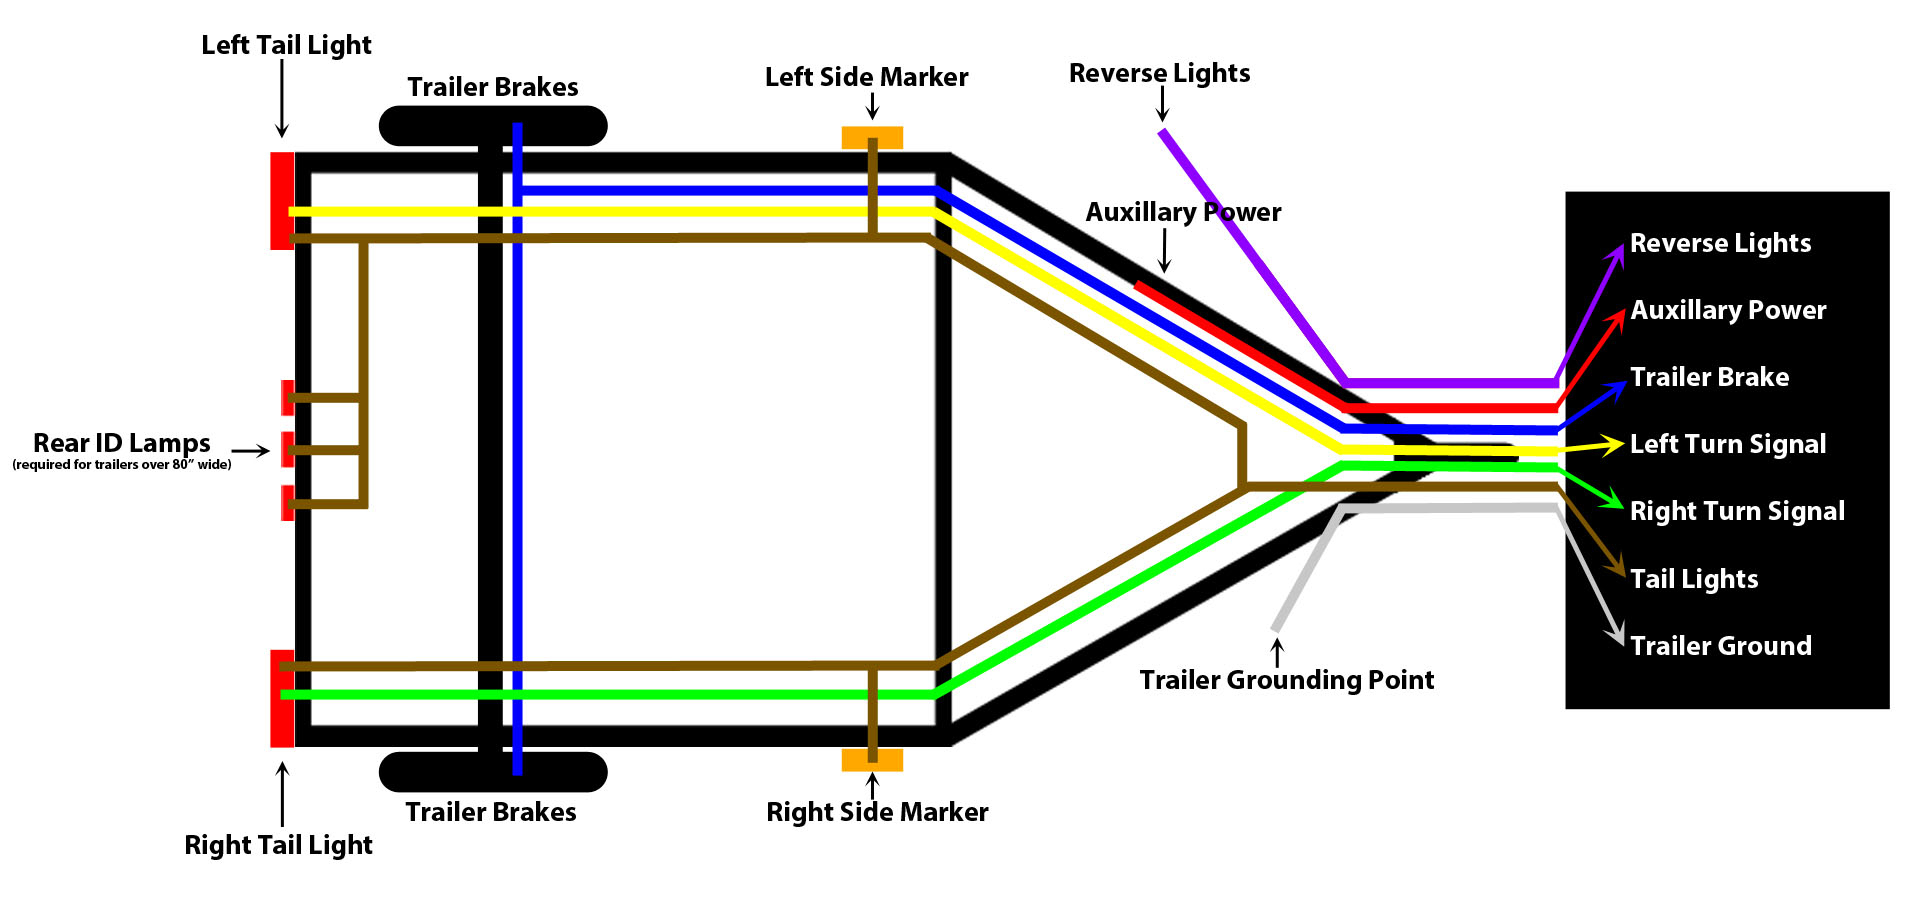 7 Pin Trailer Harness | Manual E-Books - 4 Pin Wiring Diagram